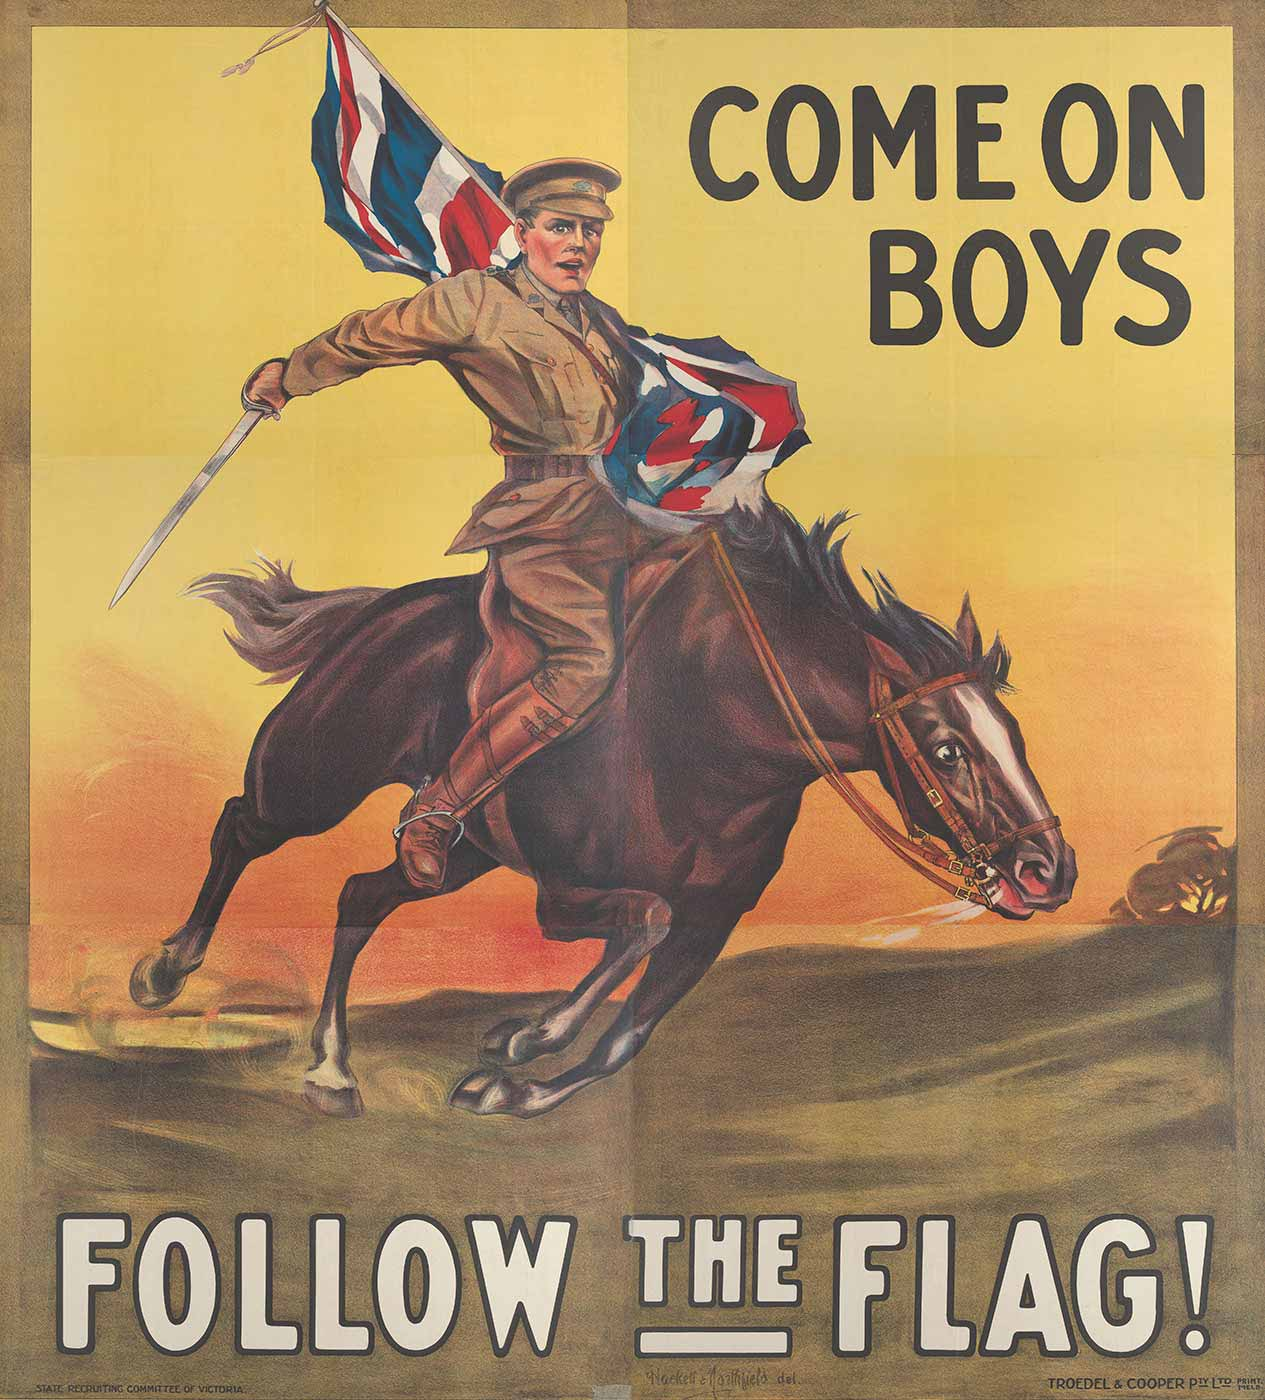 A poster showing a soldier riding a horse. The soldier holds a flag in his right hand and a drawn sword in his left. The text reads 'COME ON BOYS. FOLLOW THE FLAG!' - click to view larger image